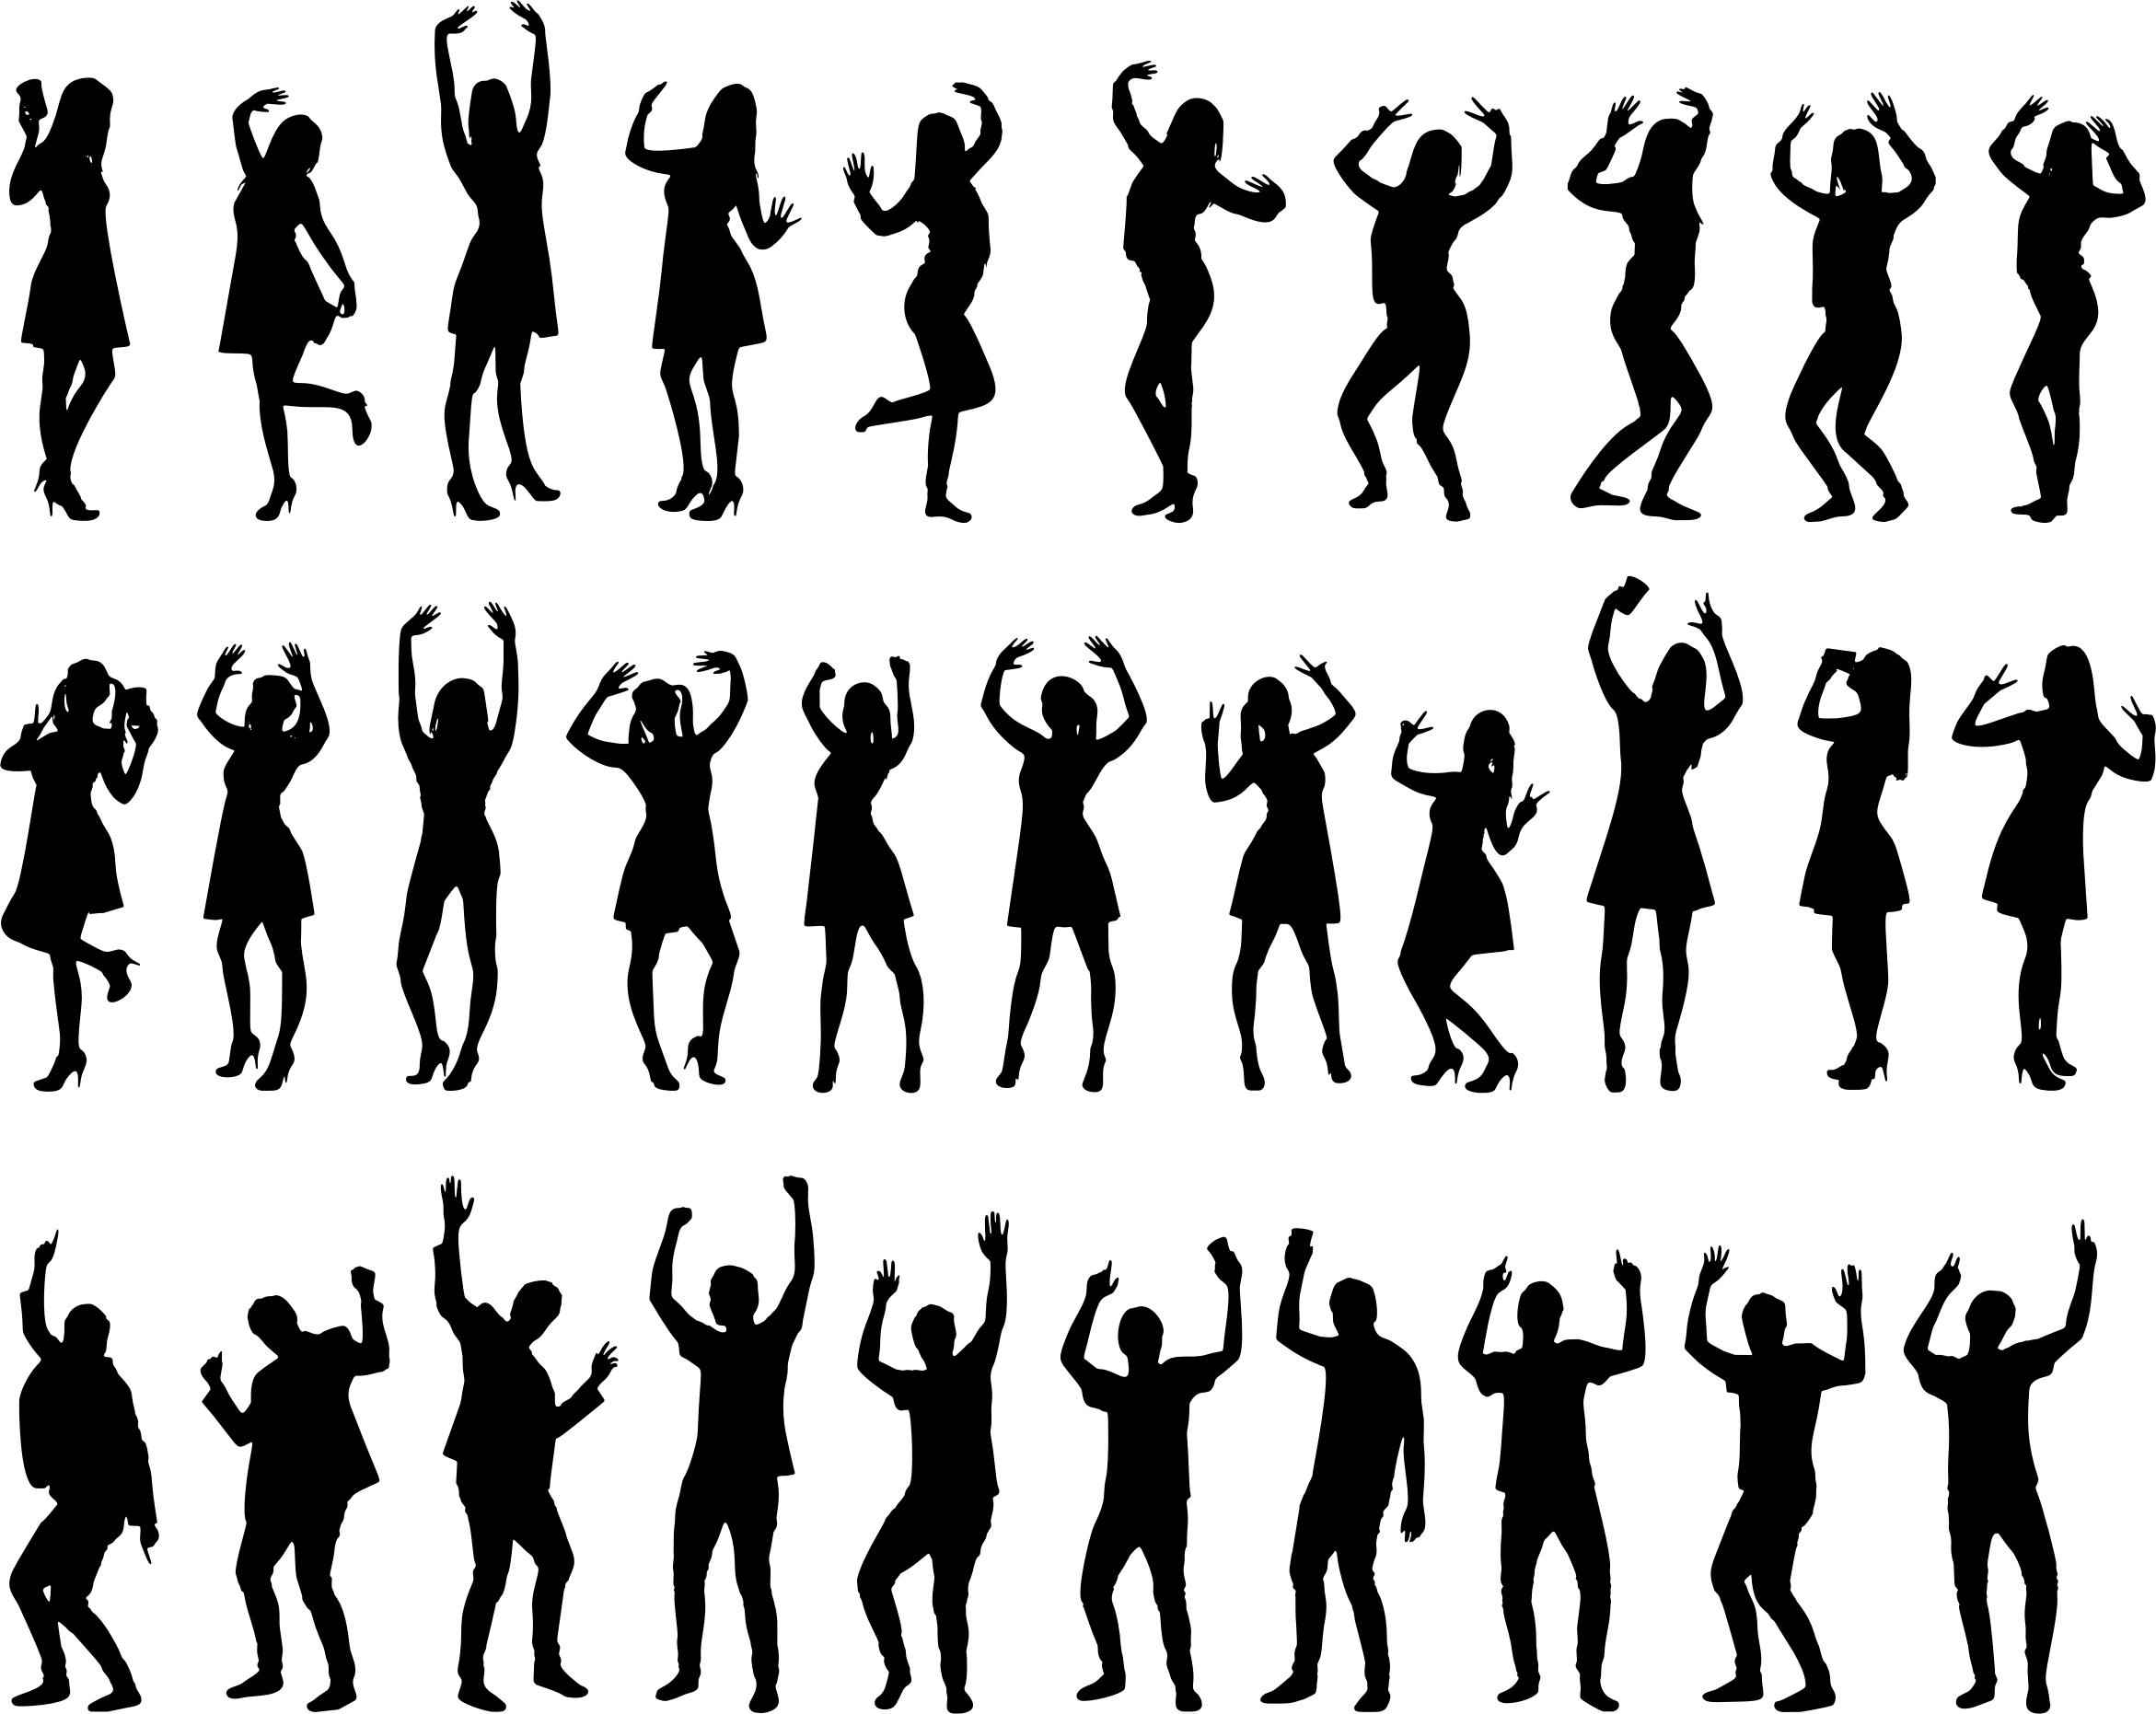 30 People Silhouettes Icons PNG